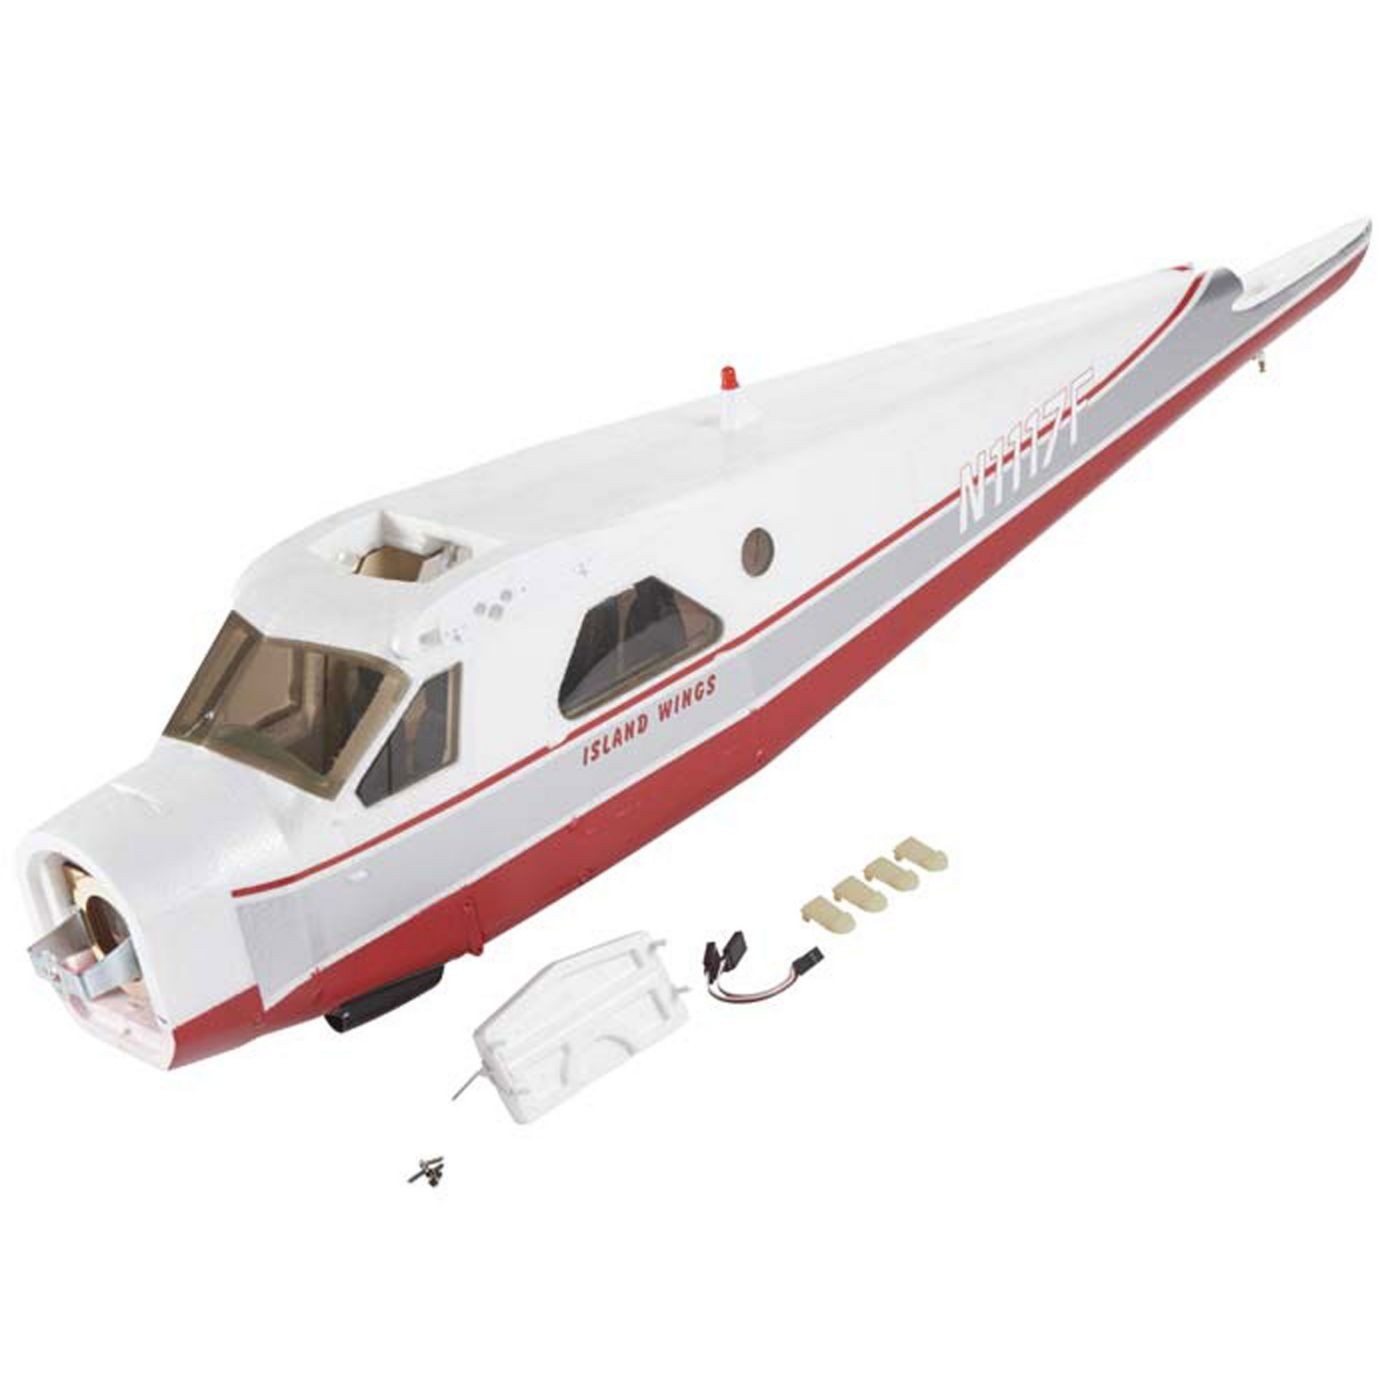 Flyzone Fuselage Set Beaver Island Wings Select Scale